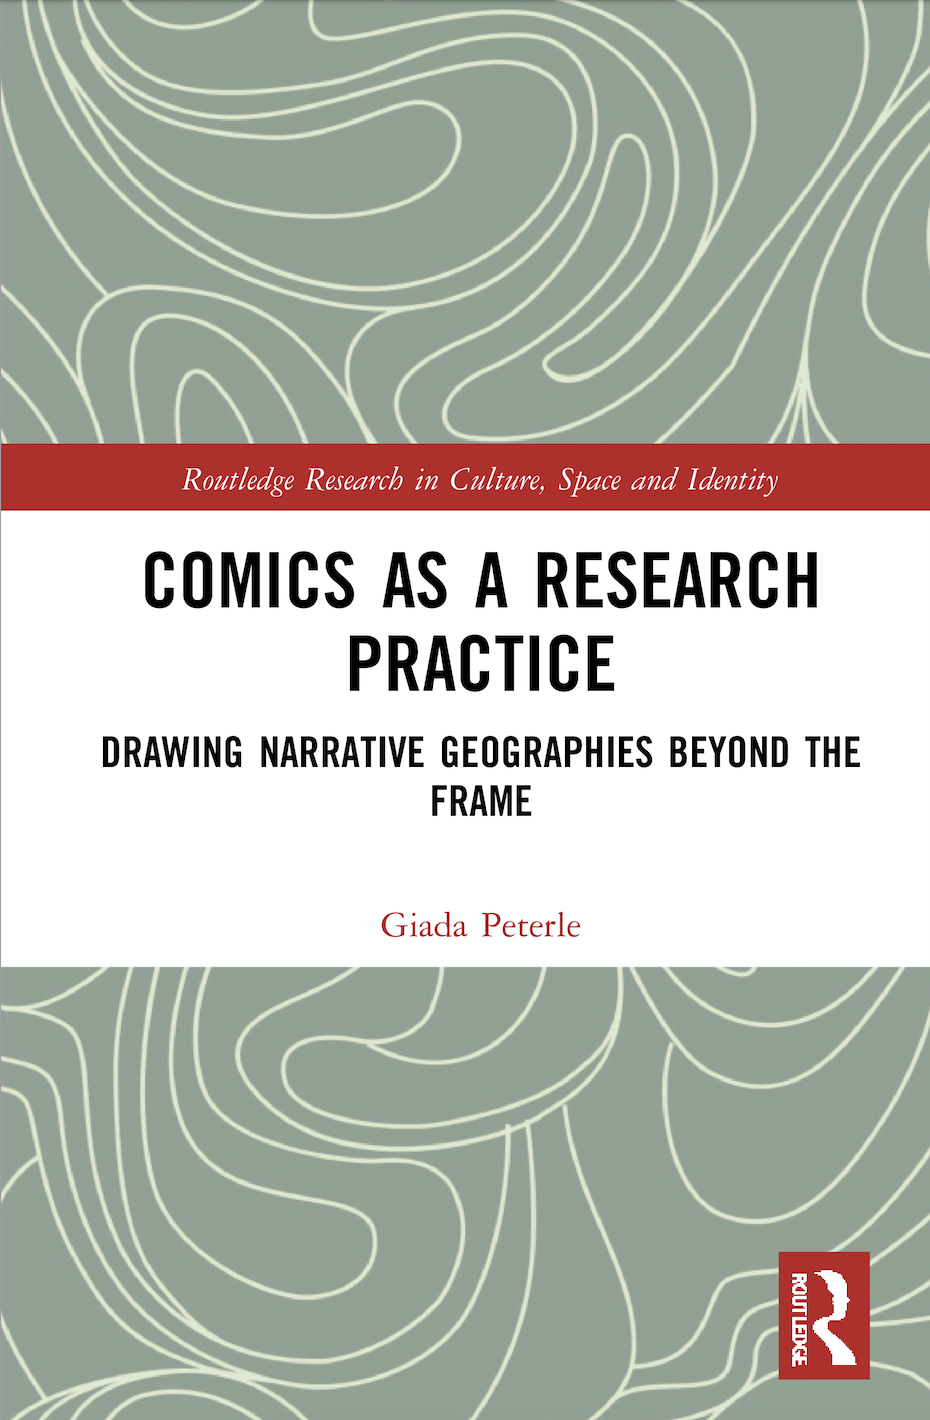 G. Peterle. Comics as a Research Practice. Drawing Narrative Geographies Beyond the Frame